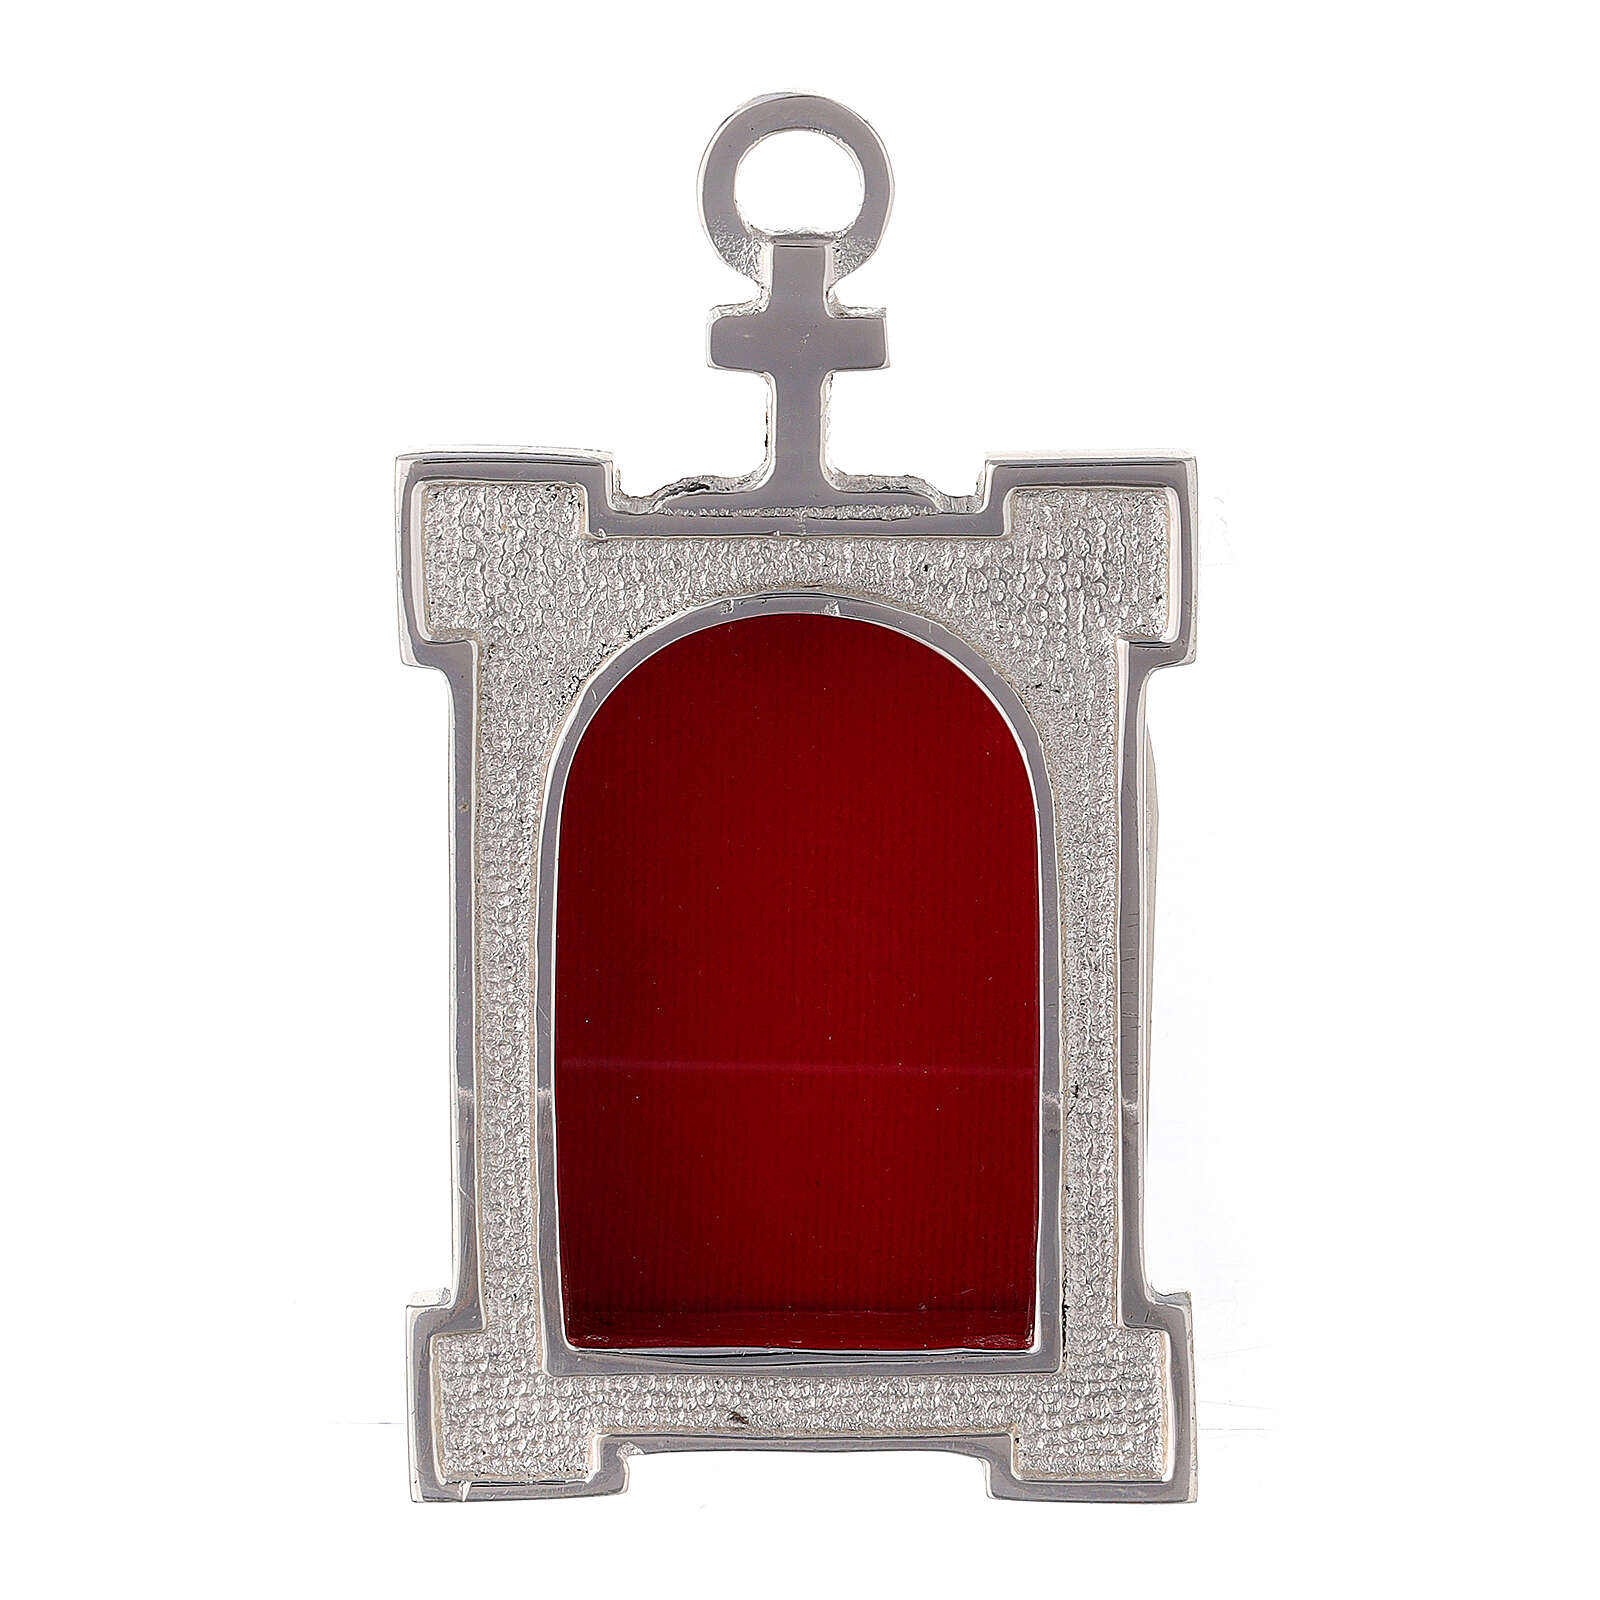 Wall arch reliquary of silver plated brass 4